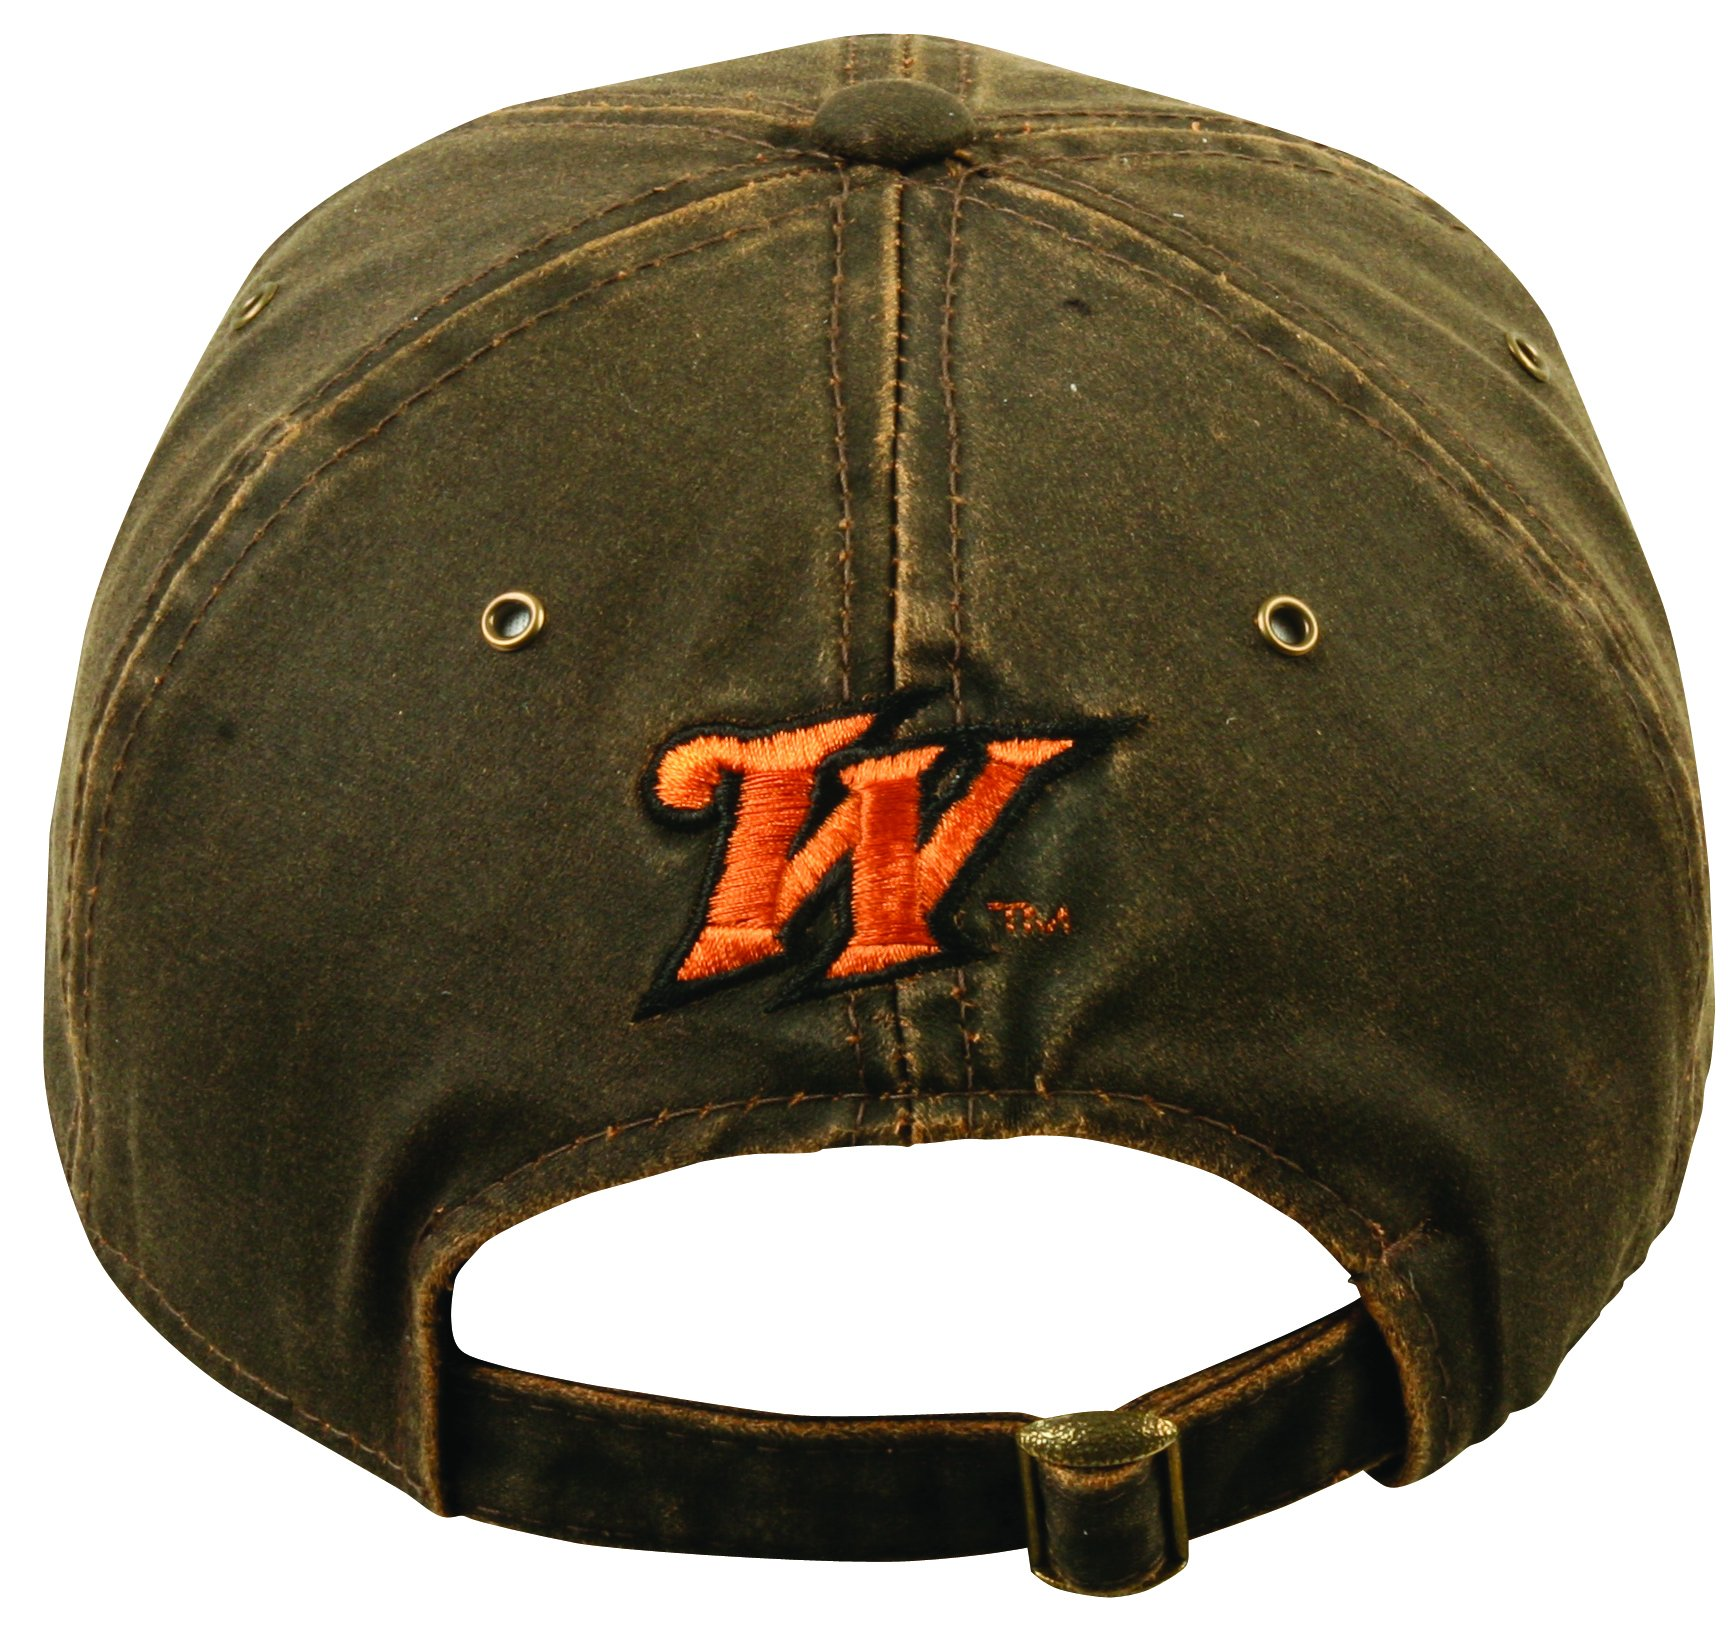 Outdoor Cap Weathered Cotton Winchester Cap by Outdoor Cap (Image #2)